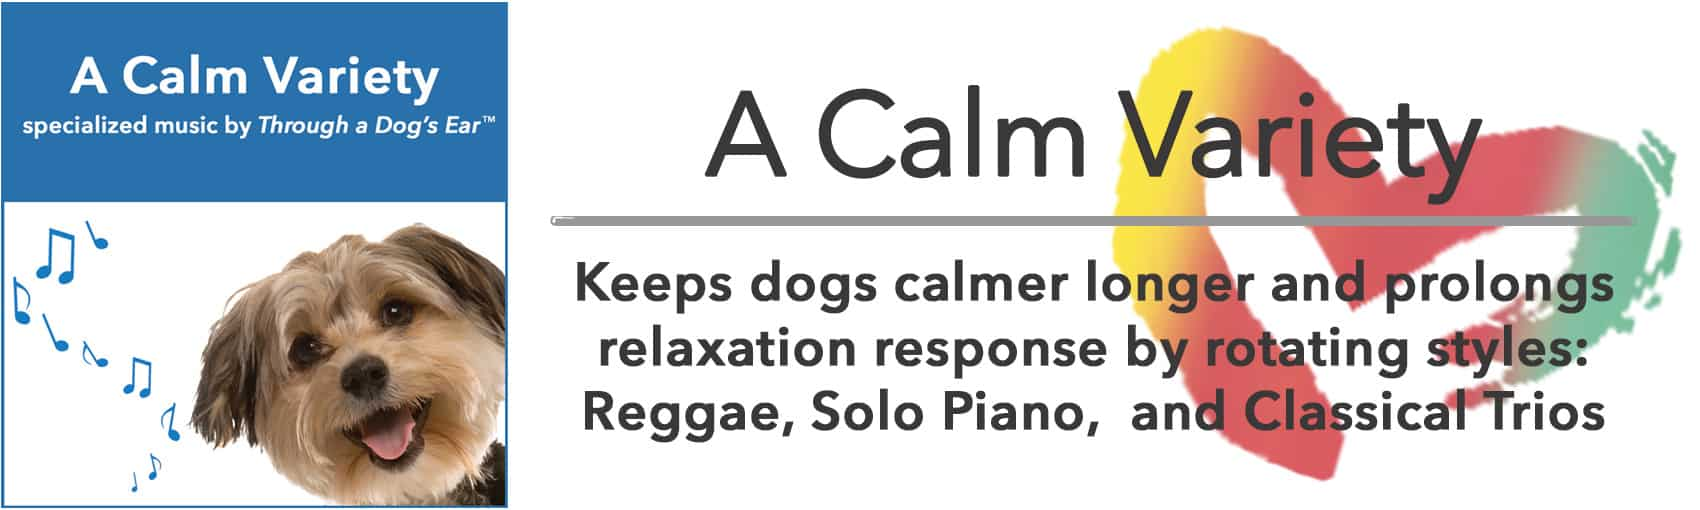 A variety of dog calming music